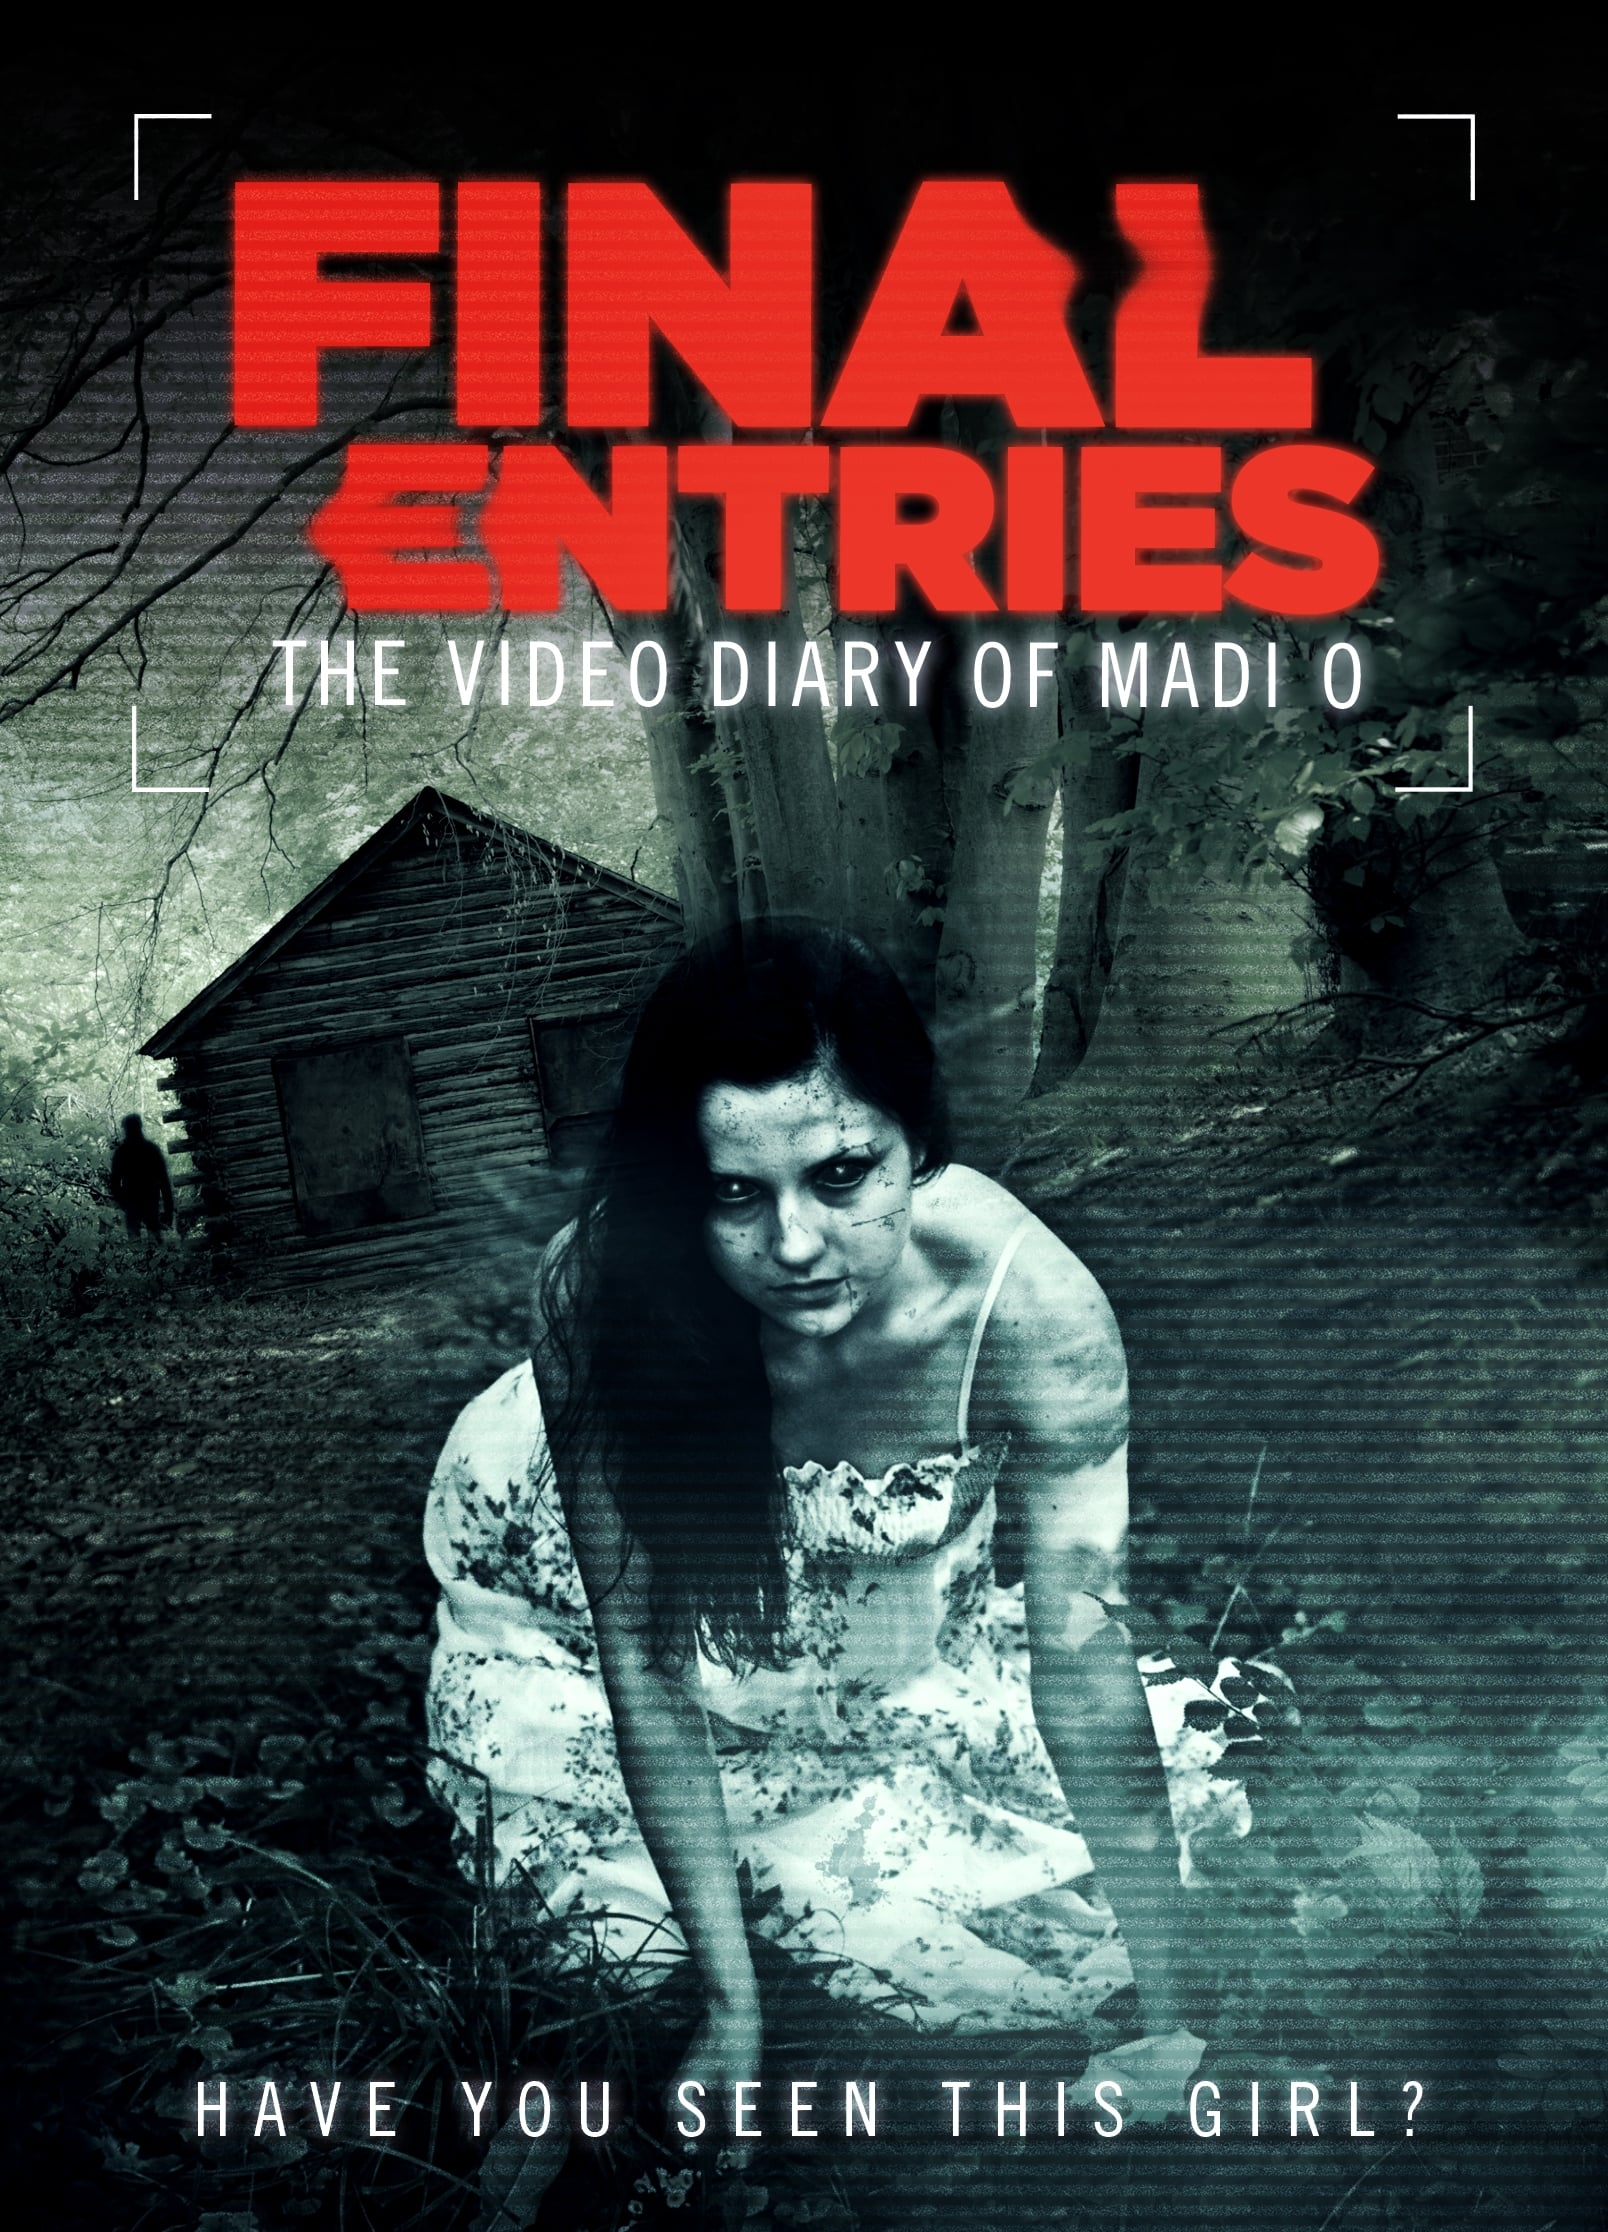 The Video Diary of Madi O, Final Entries on FREECABLE TV